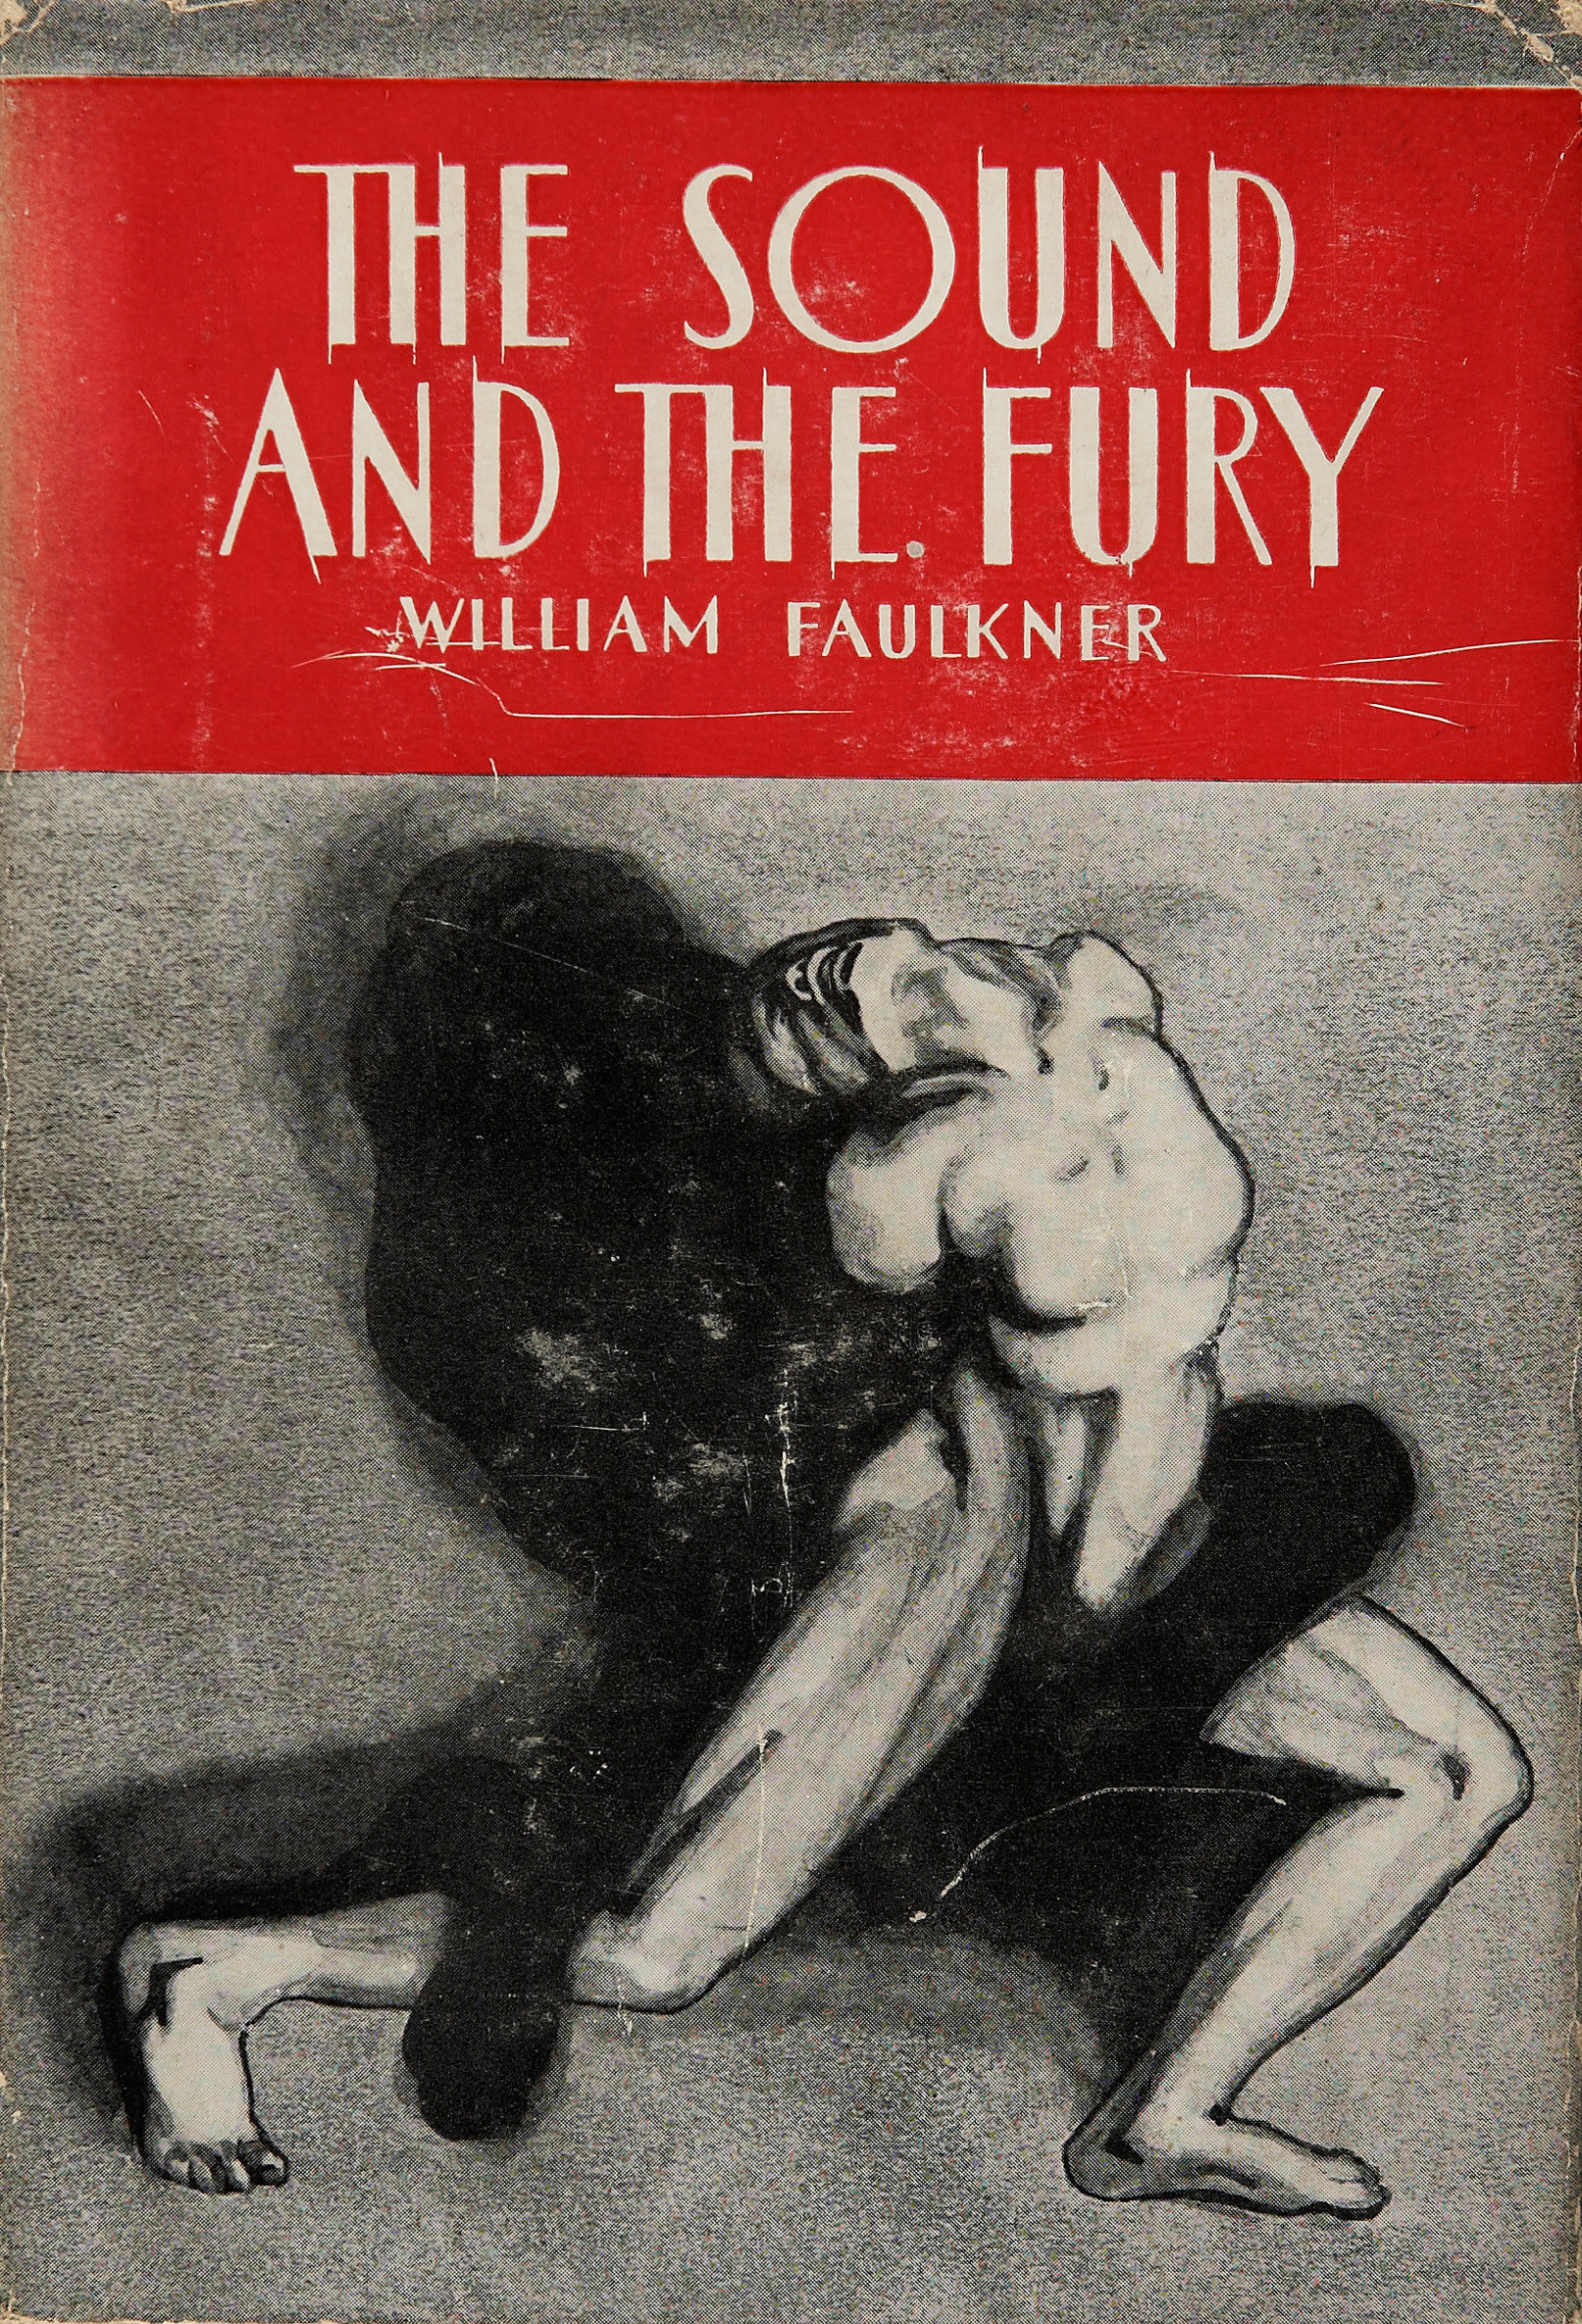 The book cover for The Sound and The Fury by William Faulkner